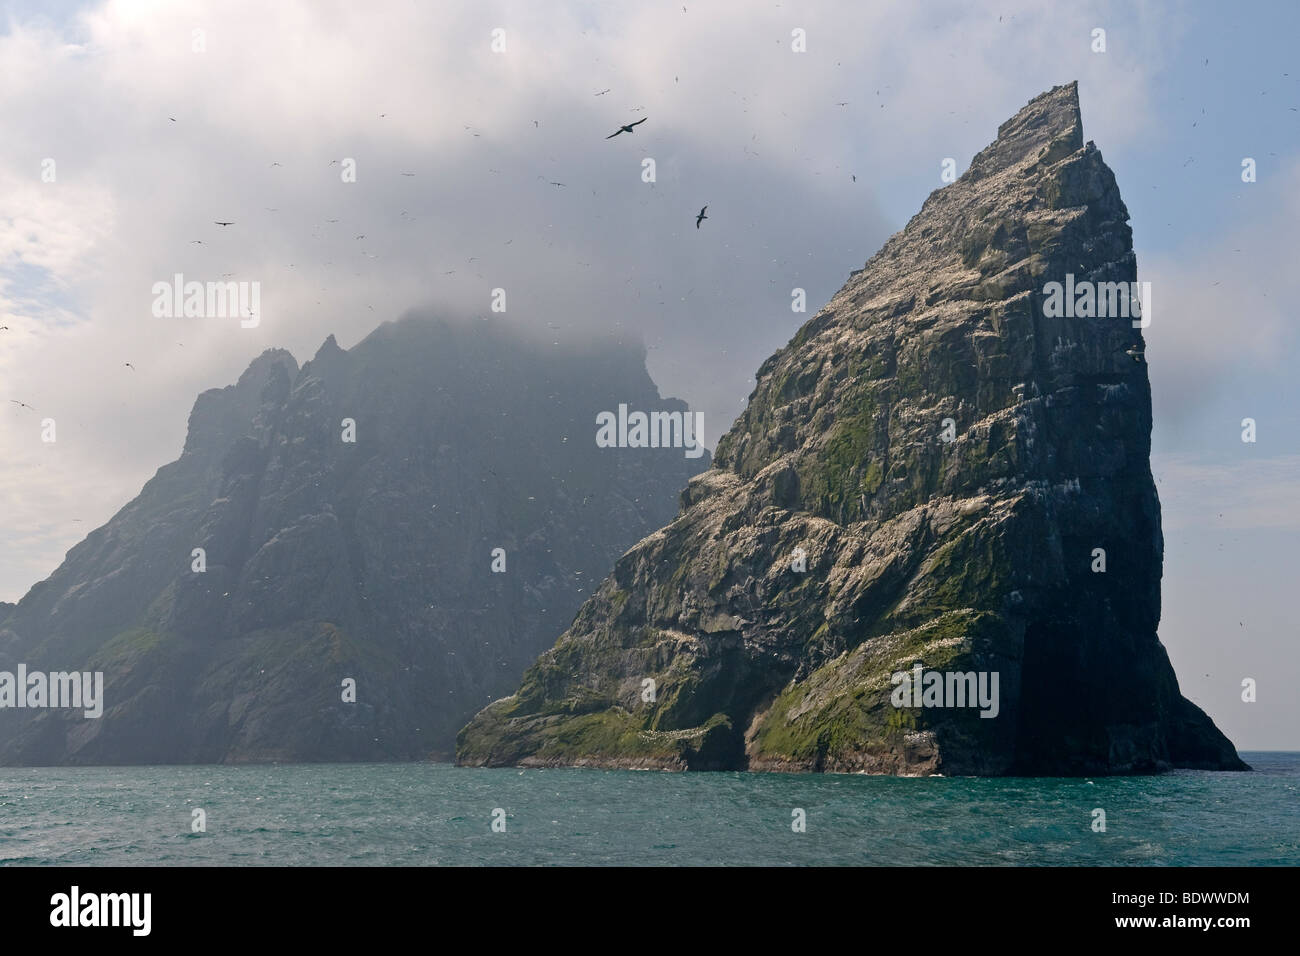 Islands of Stac an Armin and Boreray in the Saint Kilda archipelago, Scotland. - Stock Image